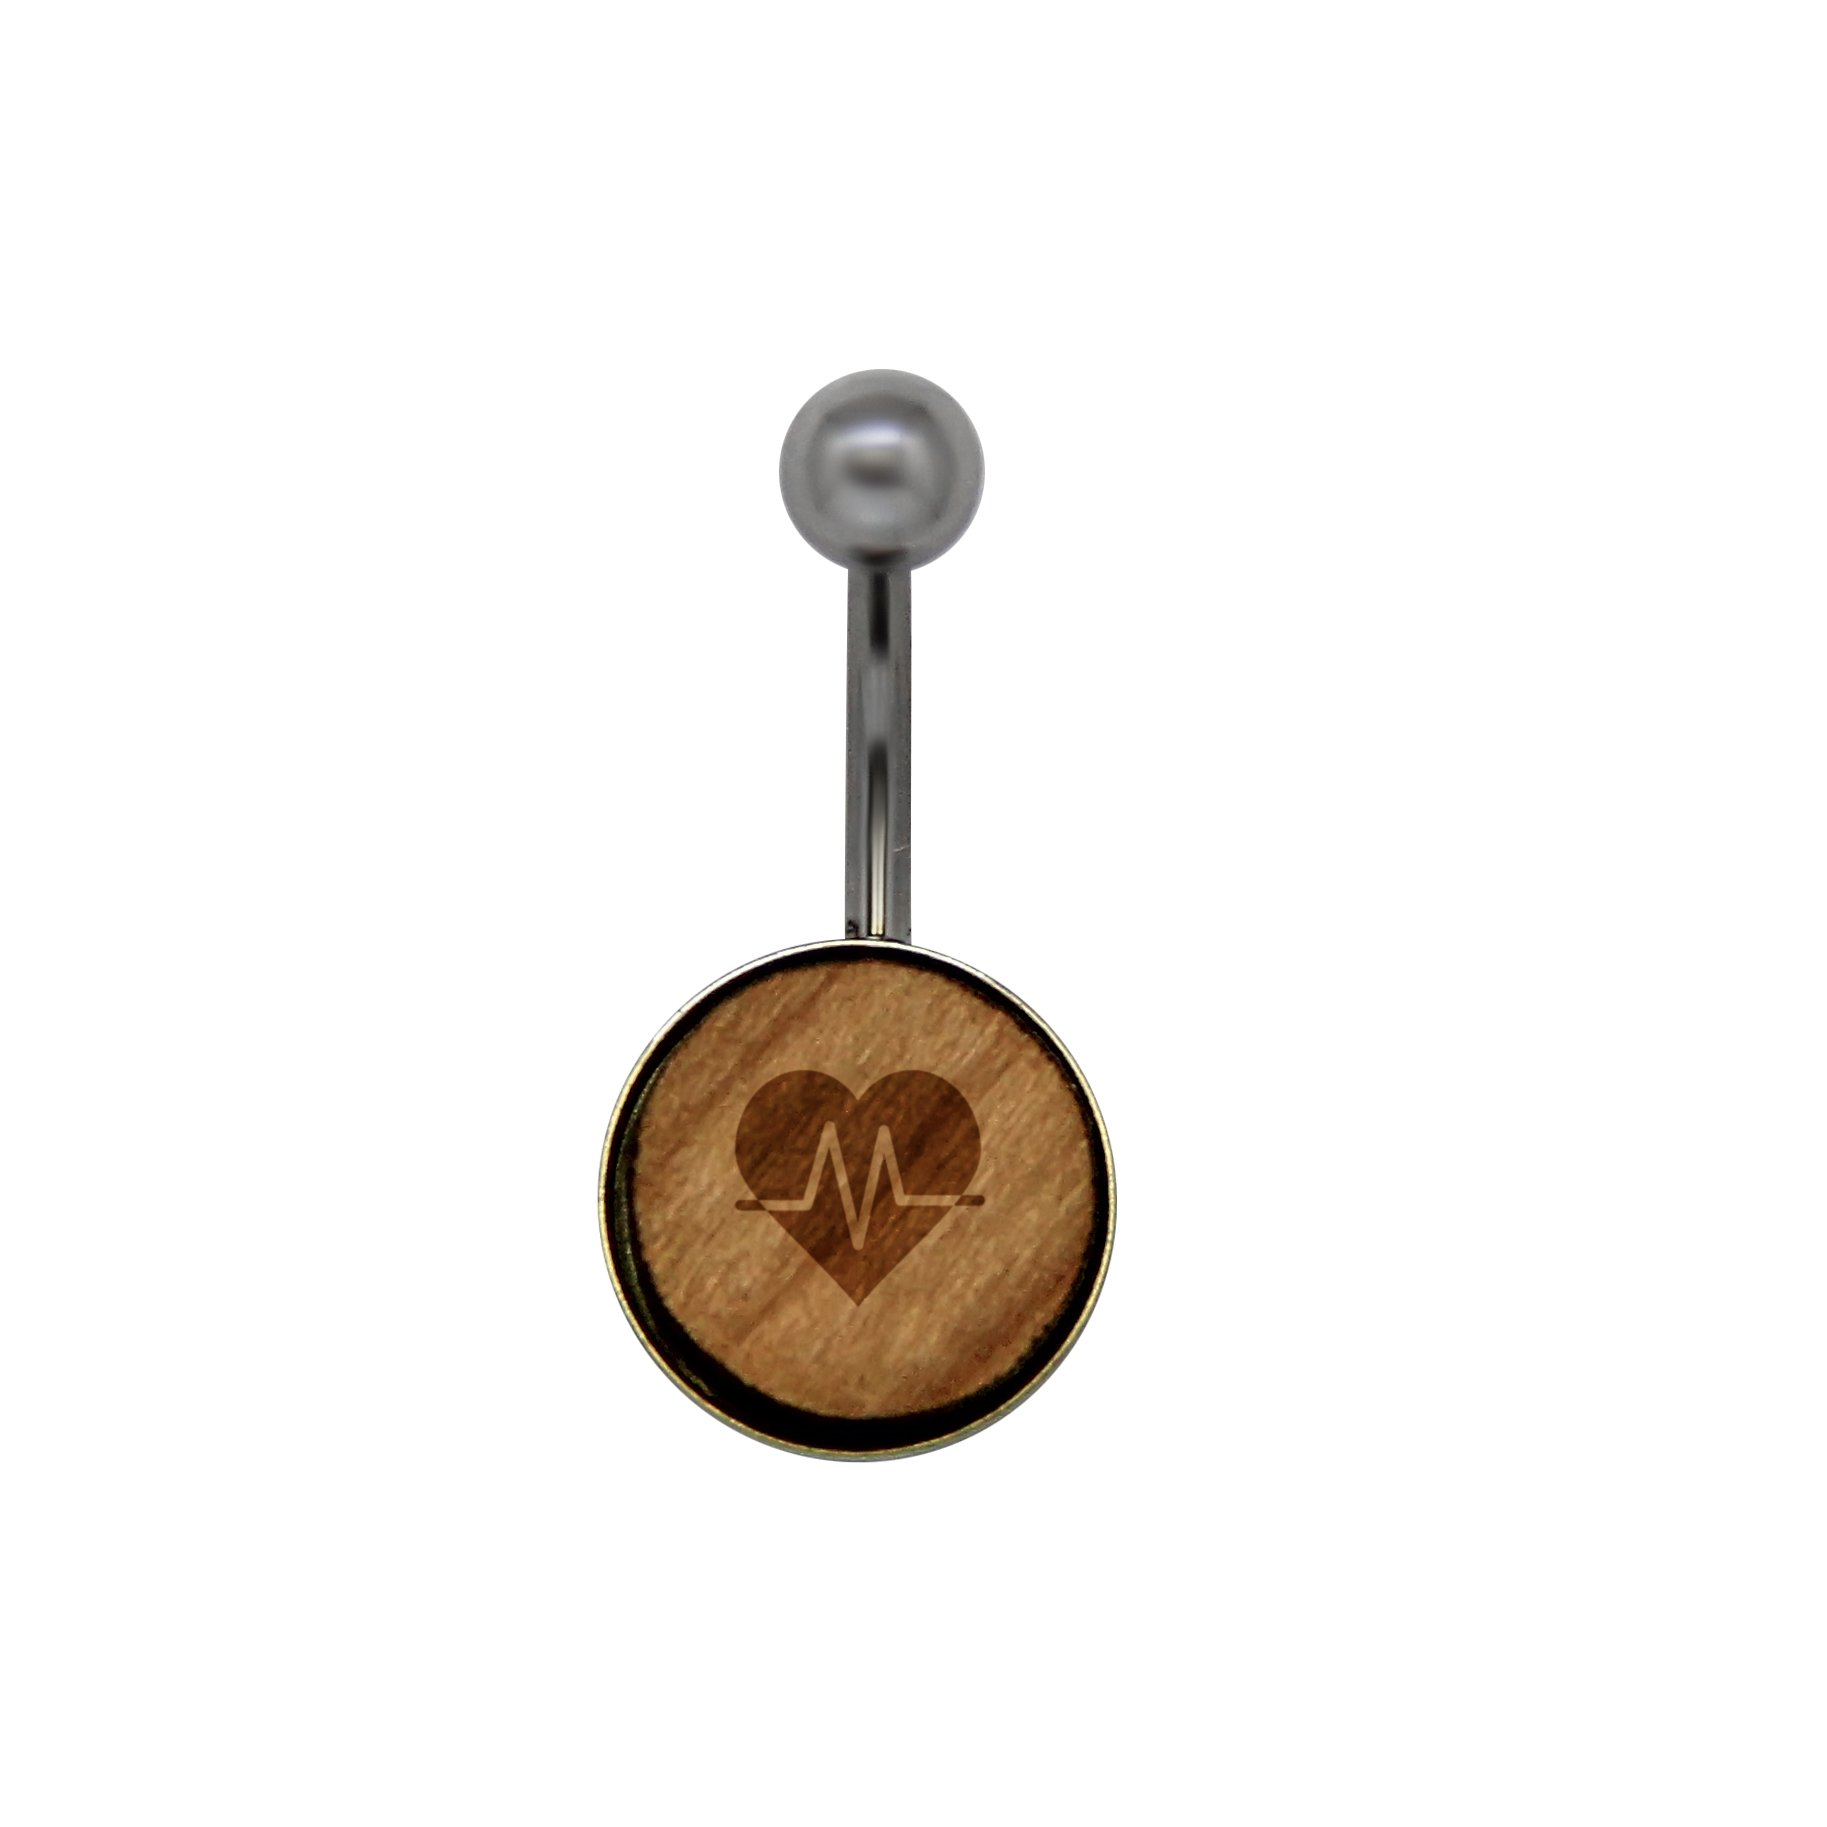 Heartbeat Love Surgical Stainless Steel Belly Button Rings - Size 14 Gauge Wooden Navel Ring - Rustic Wood Navel Ring with Laser Engraved Design